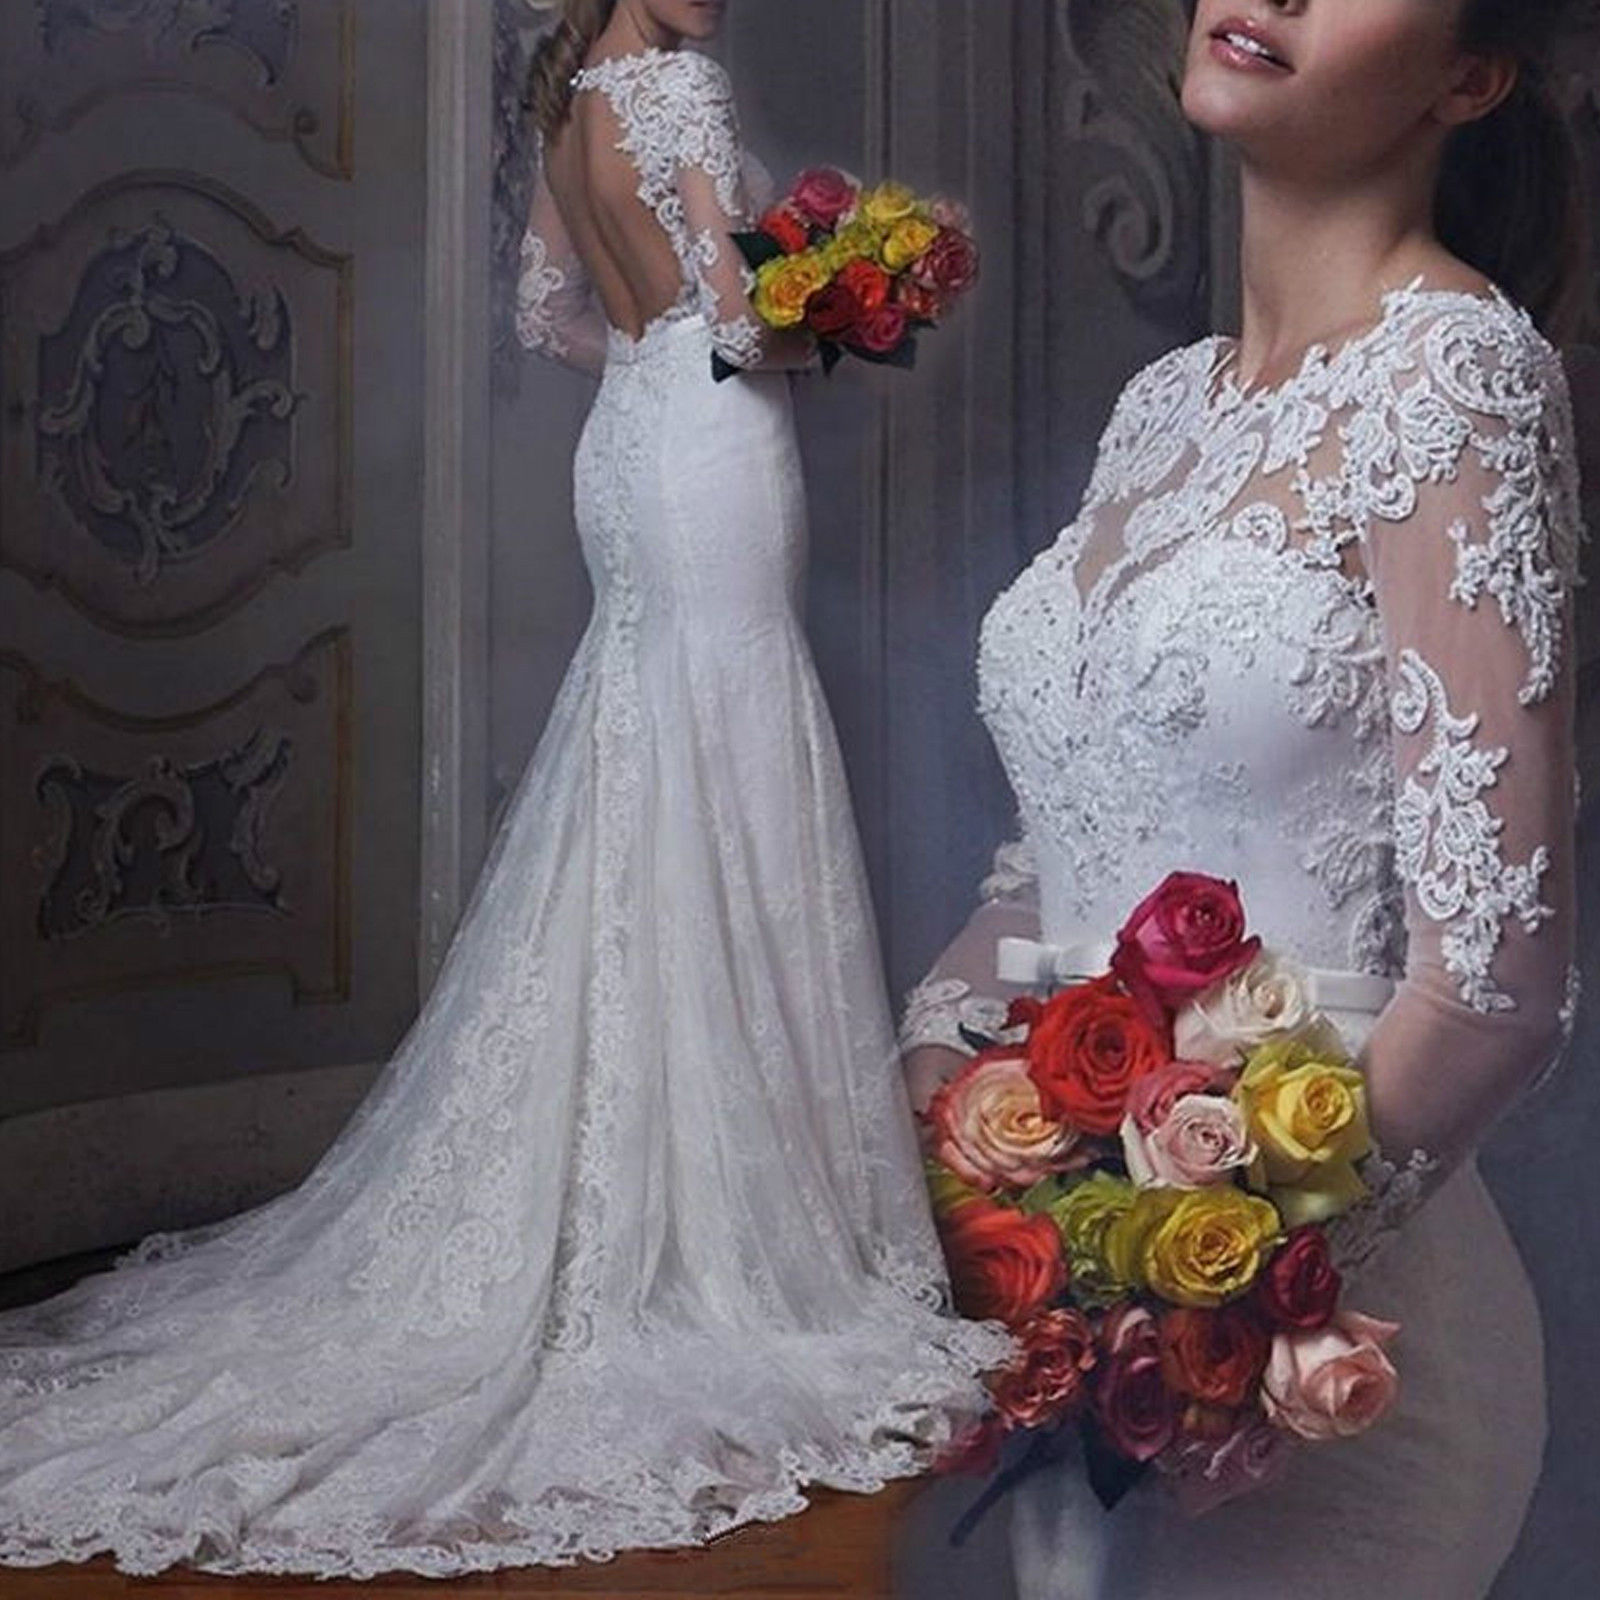 Bridal gowns usa vosoi bridal gowns usa promotion shop for promotional bridal gowns usa ombrellifo Gallery